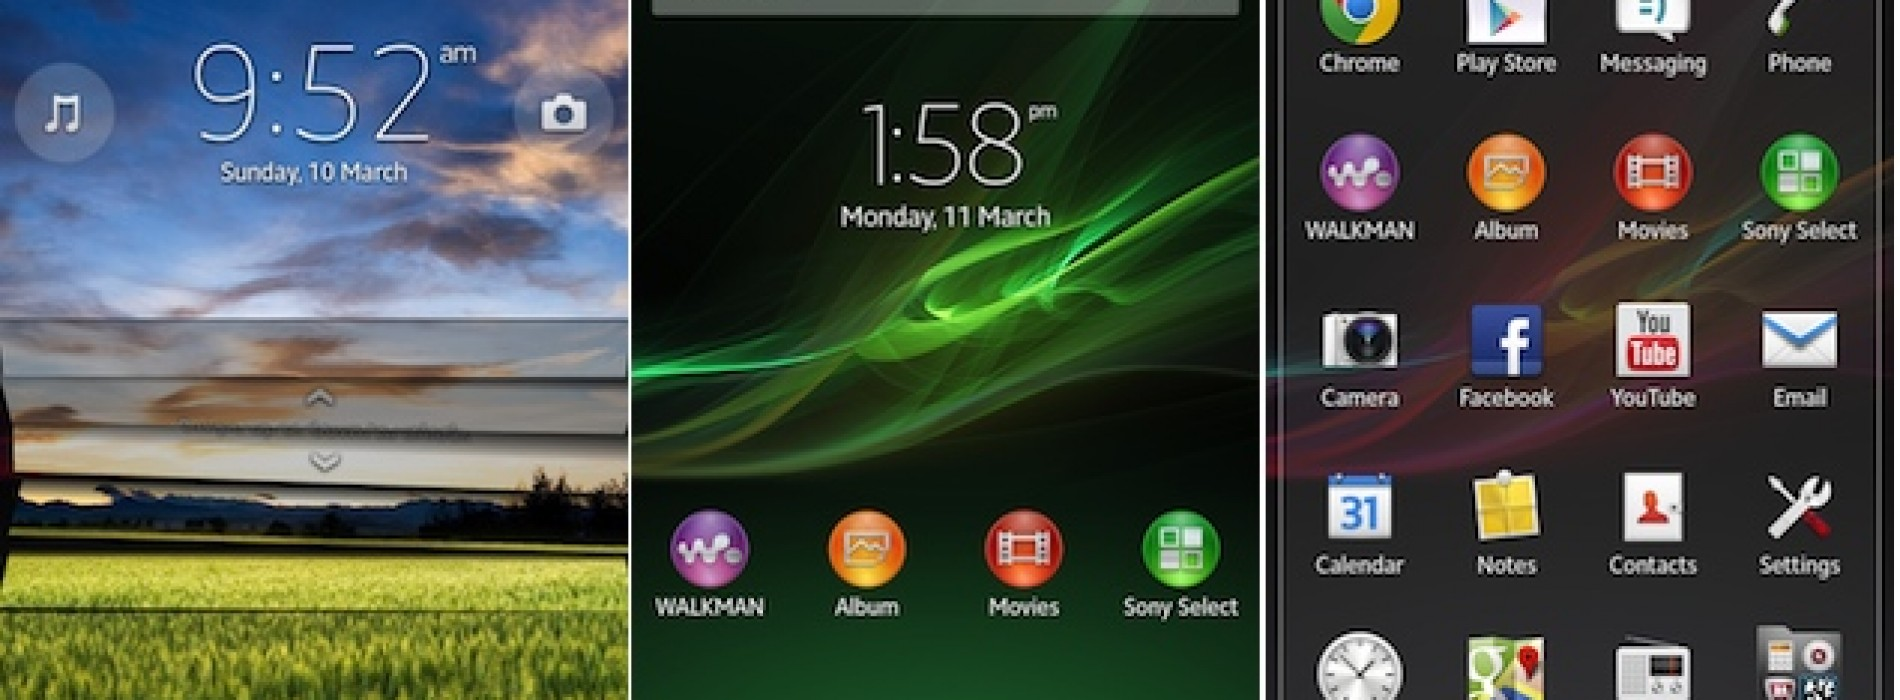 Sony Xperia ZU set to launch with new UI and Android 4.2.2